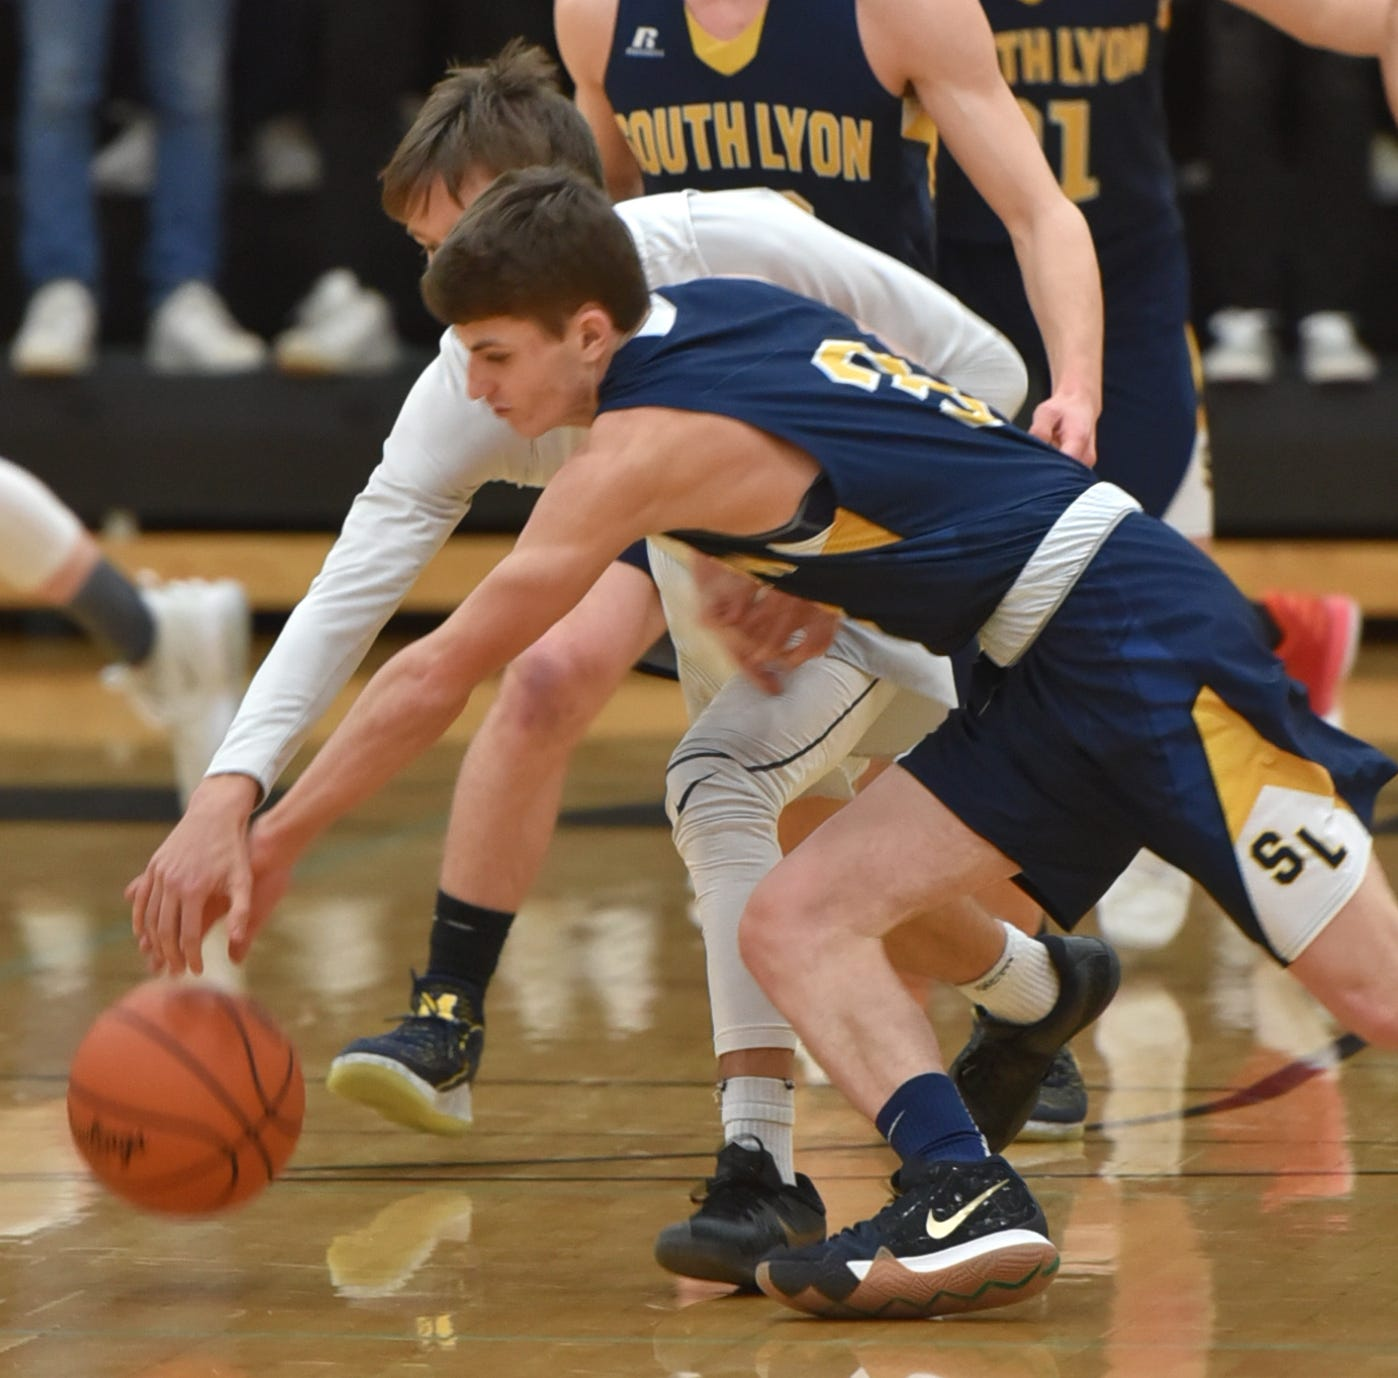 Fracassi brothers lead South Lyon to avenging win at East